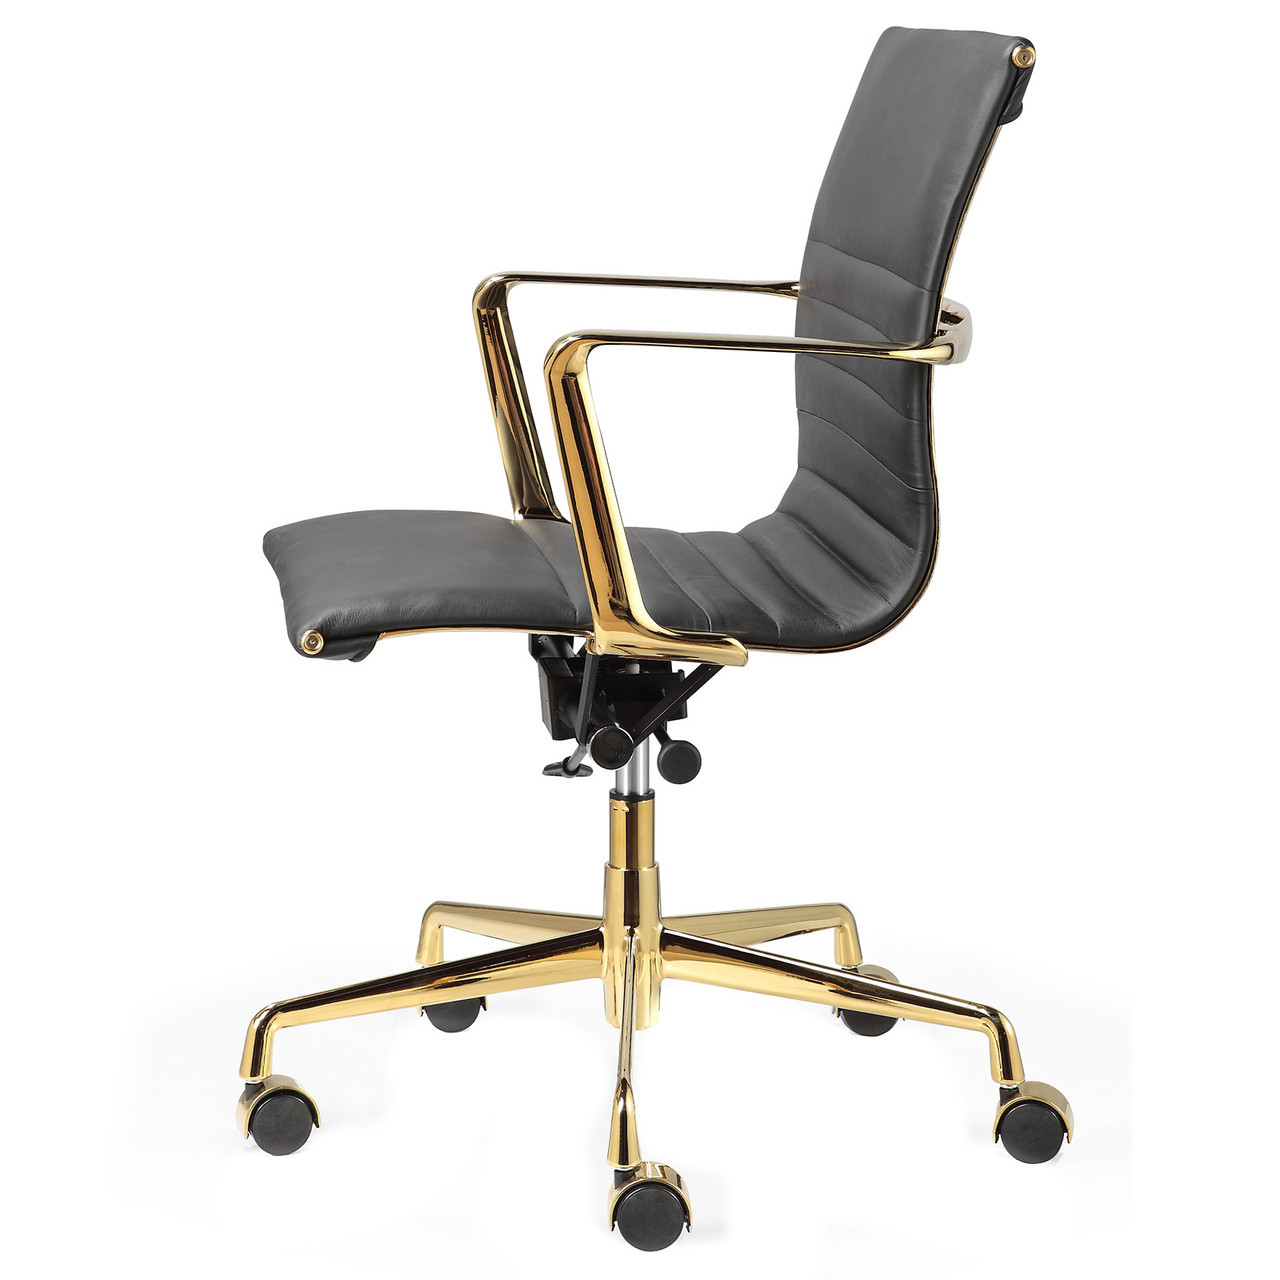 black italian leather + gold m346 modern office chairs | zin home